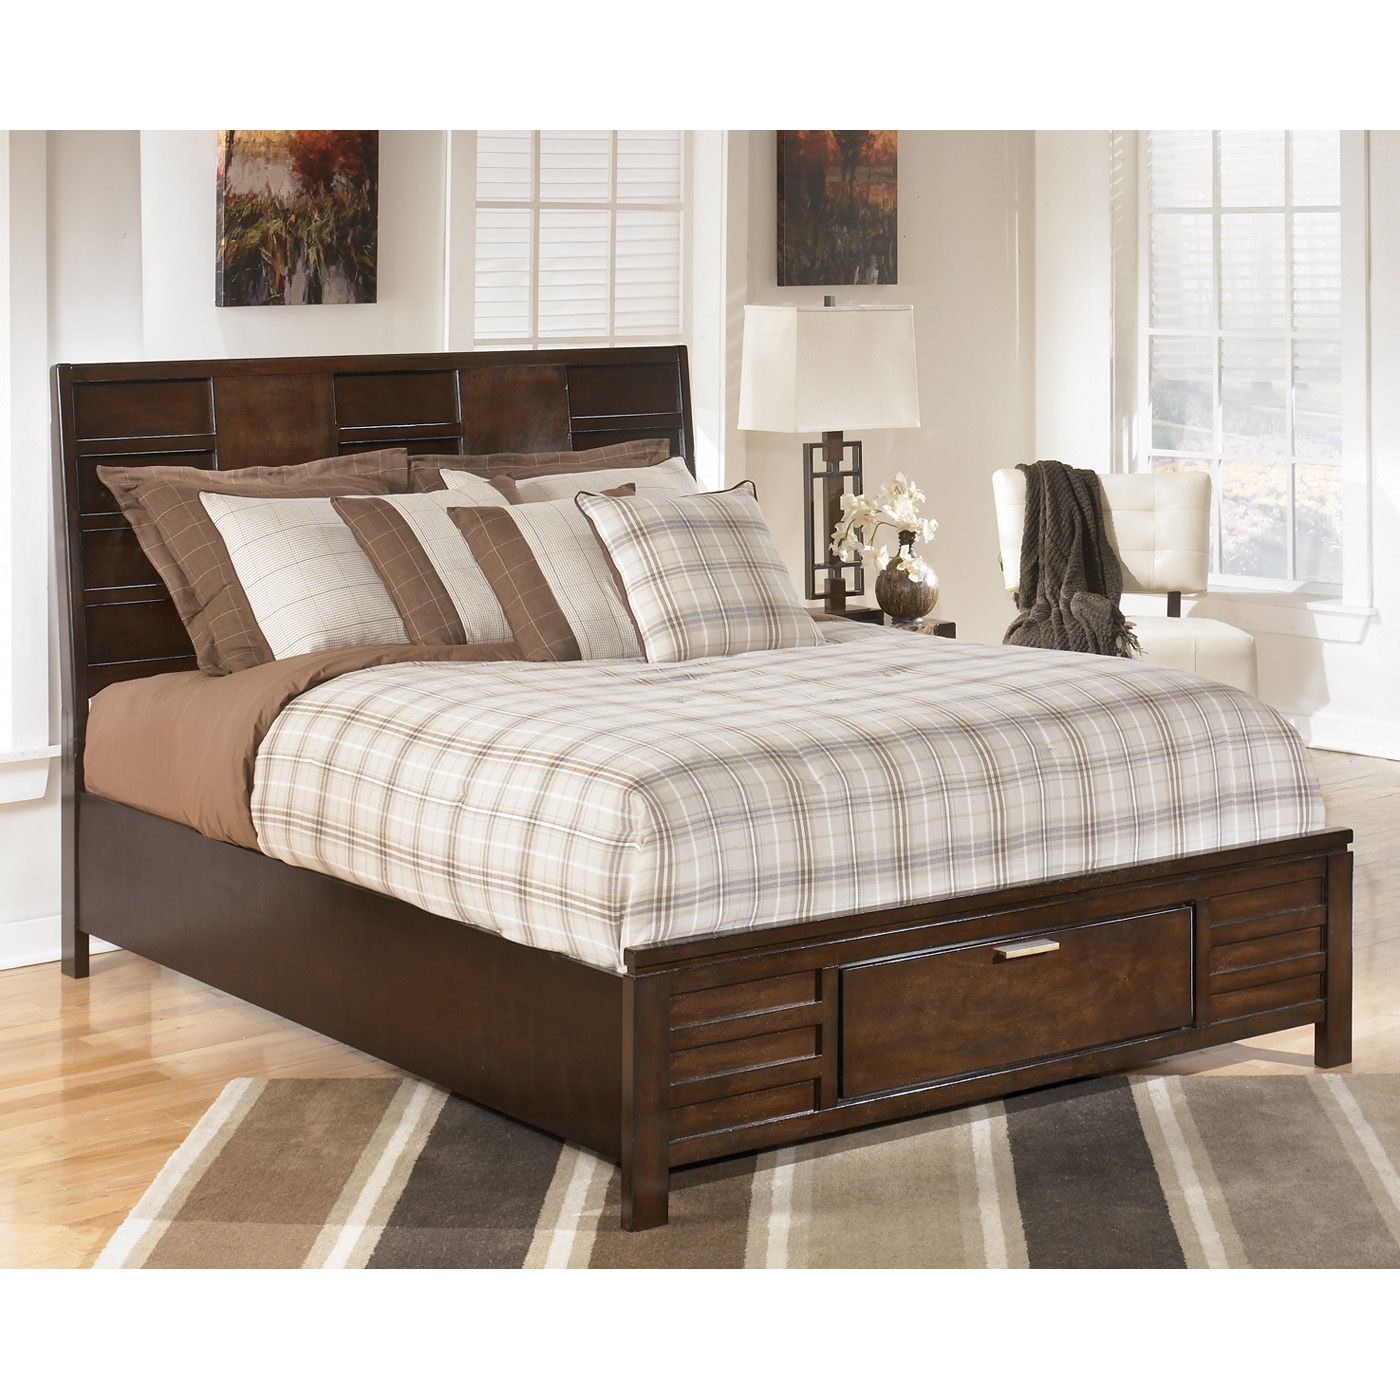 Signature Design by Ashley Nowata Panel Bed at ATG Stores